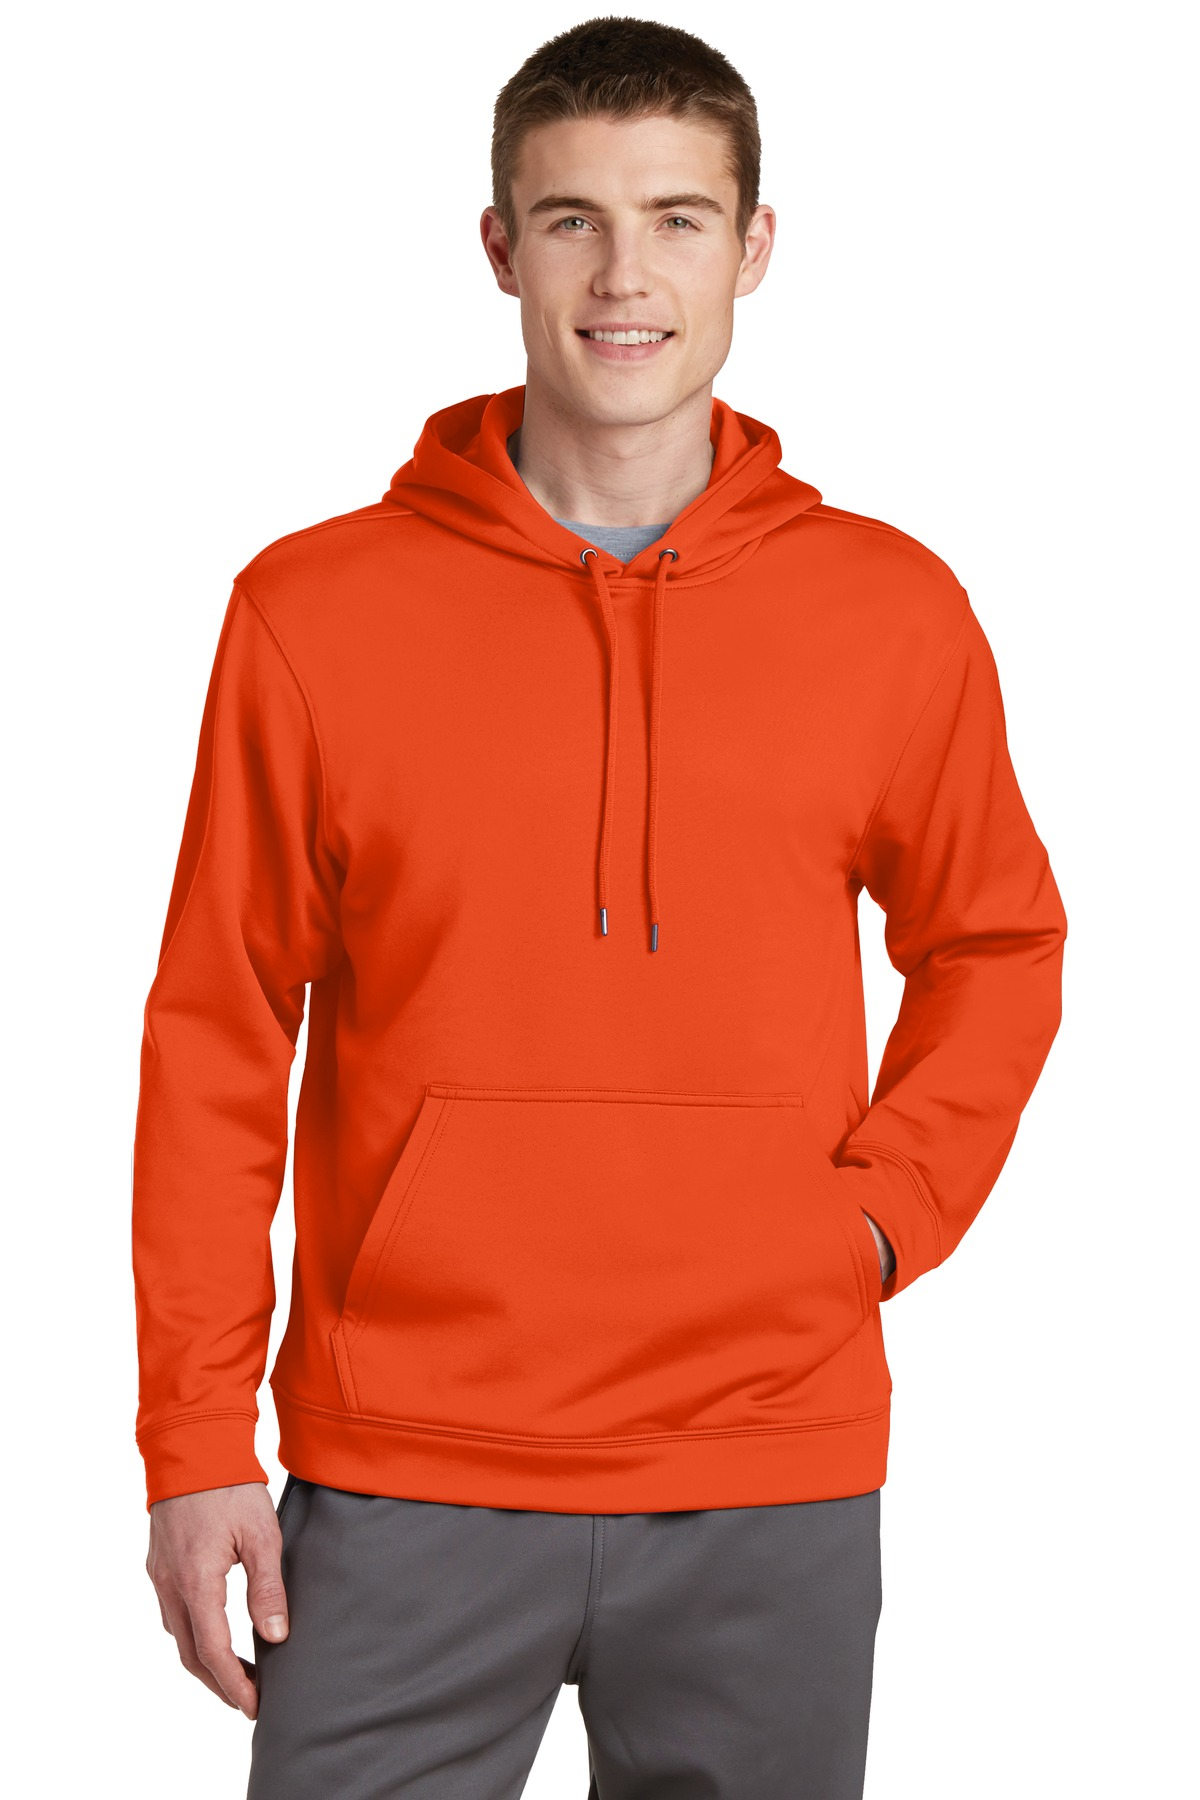 Sport-Tek ®  Sport-Wick ®  Fleece Hooded Pullover.  F244 - Deep Orange